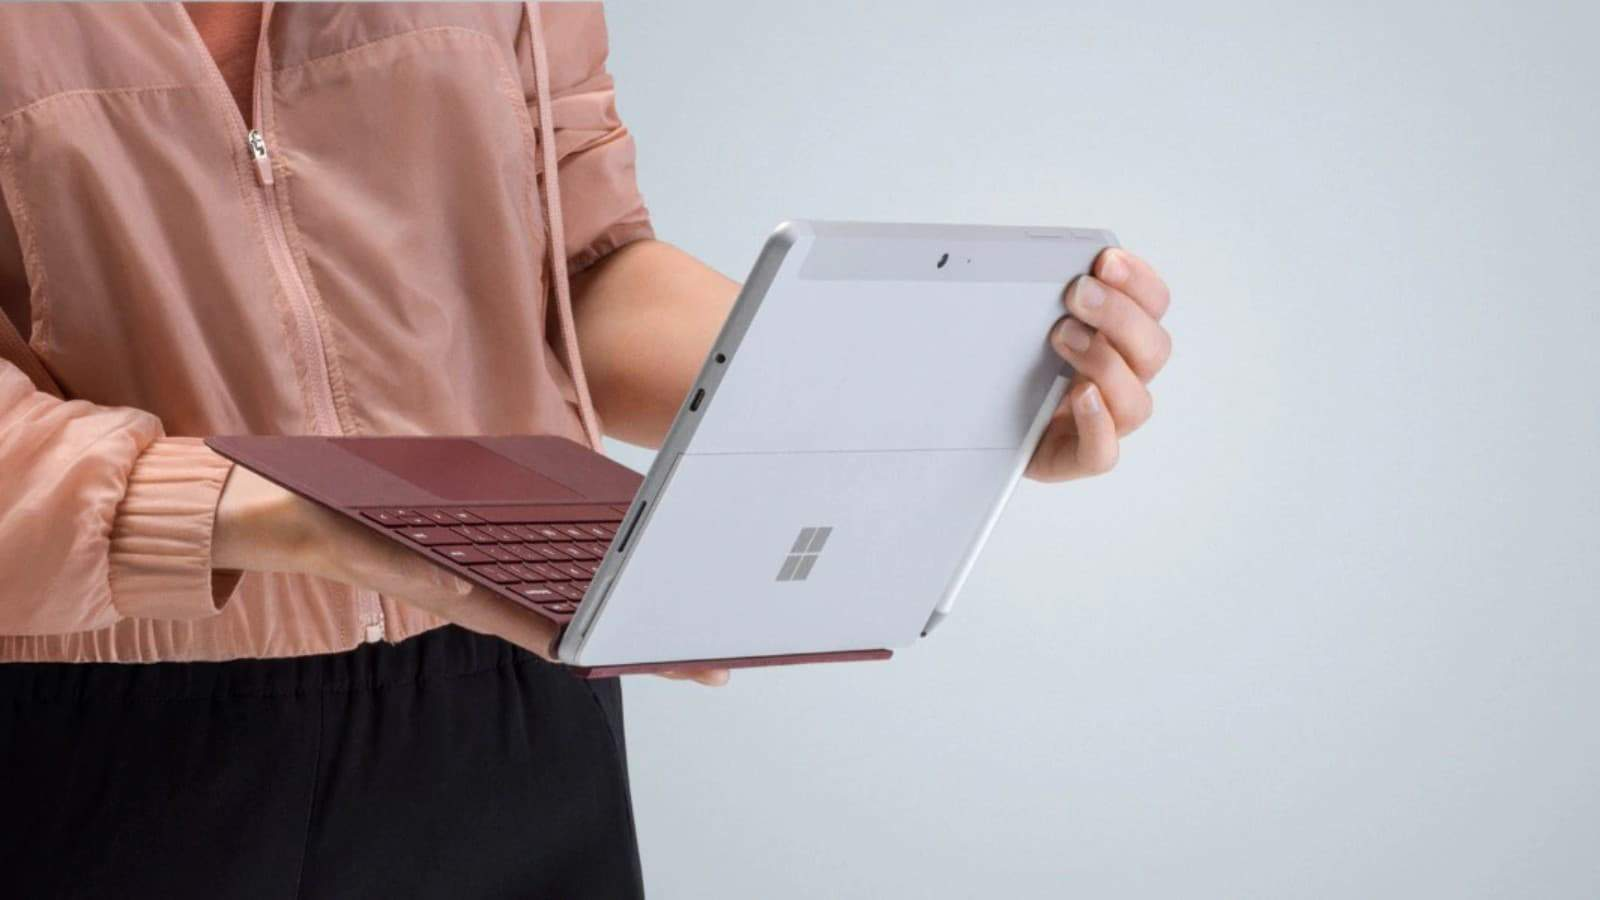 Microsoft Surface Go press image resized gift guide